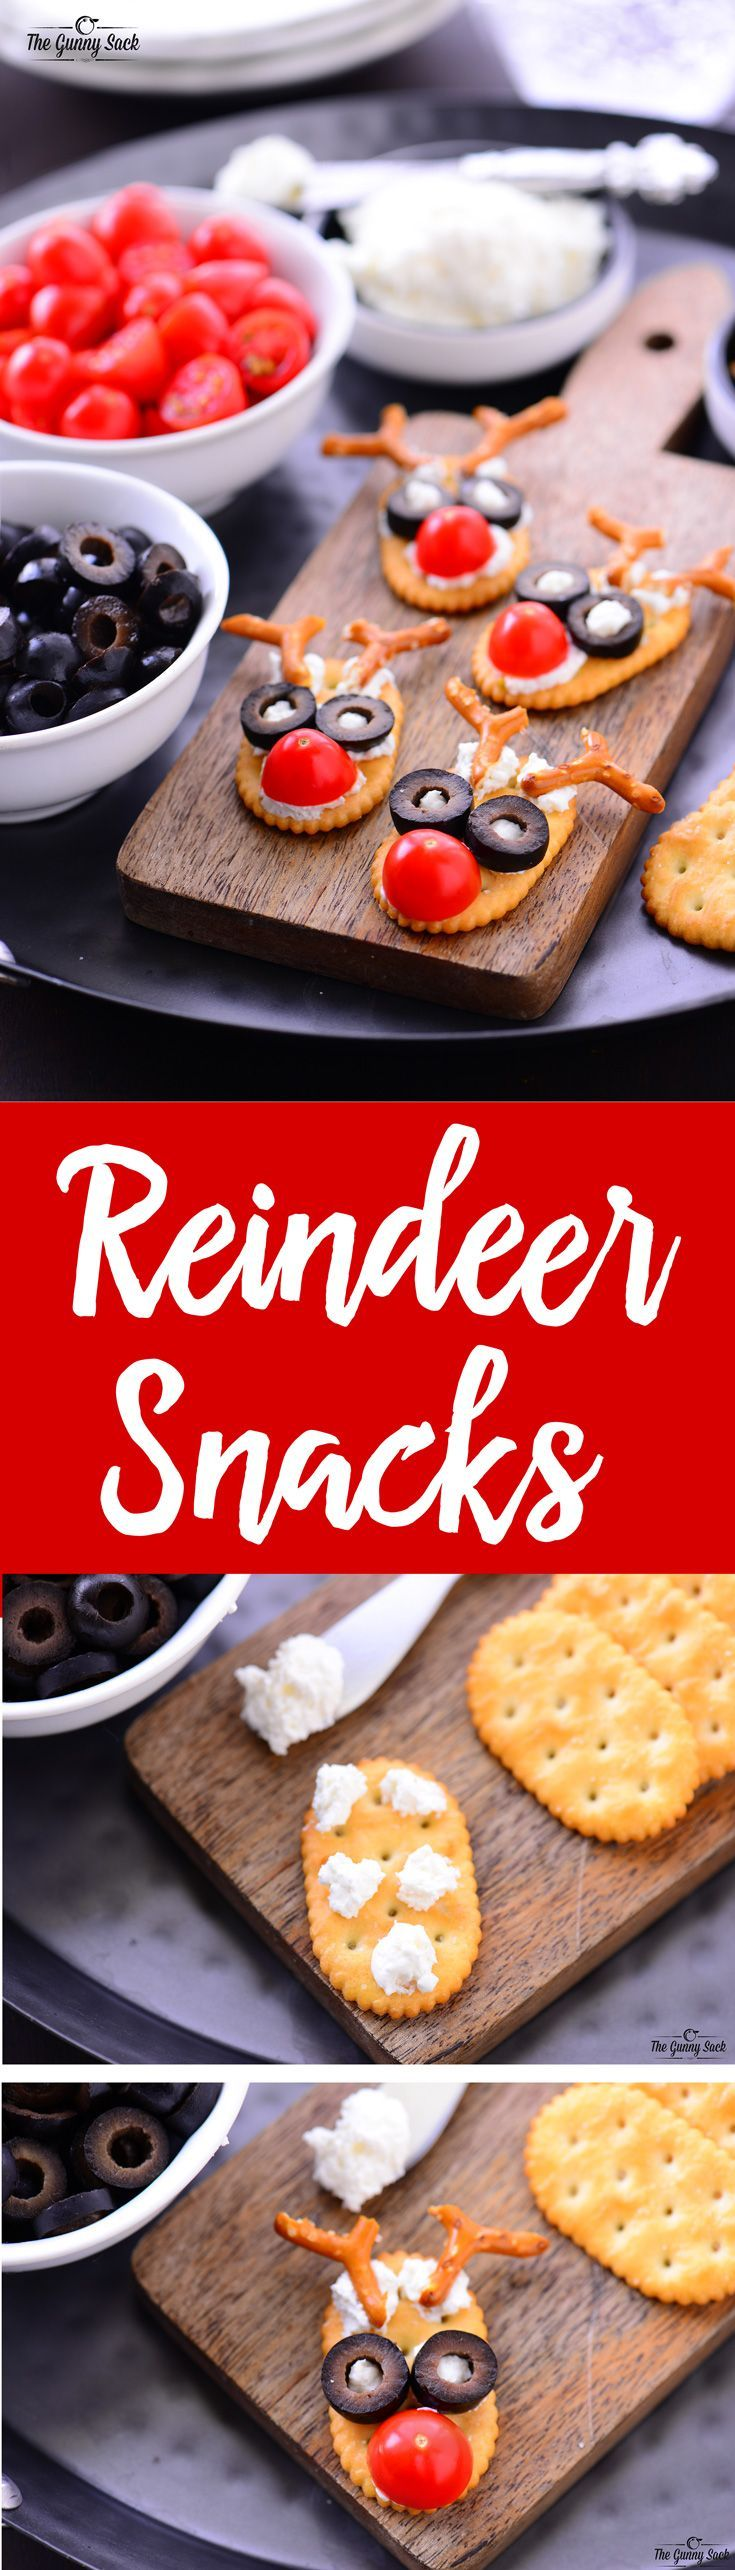 These simple, delicious Reindeer Snacks are sure to bring smiles to the faces of kids of all ages. They would be great for a holiday party, potluck or even as an after school snack! @CalRipeOlives #ad